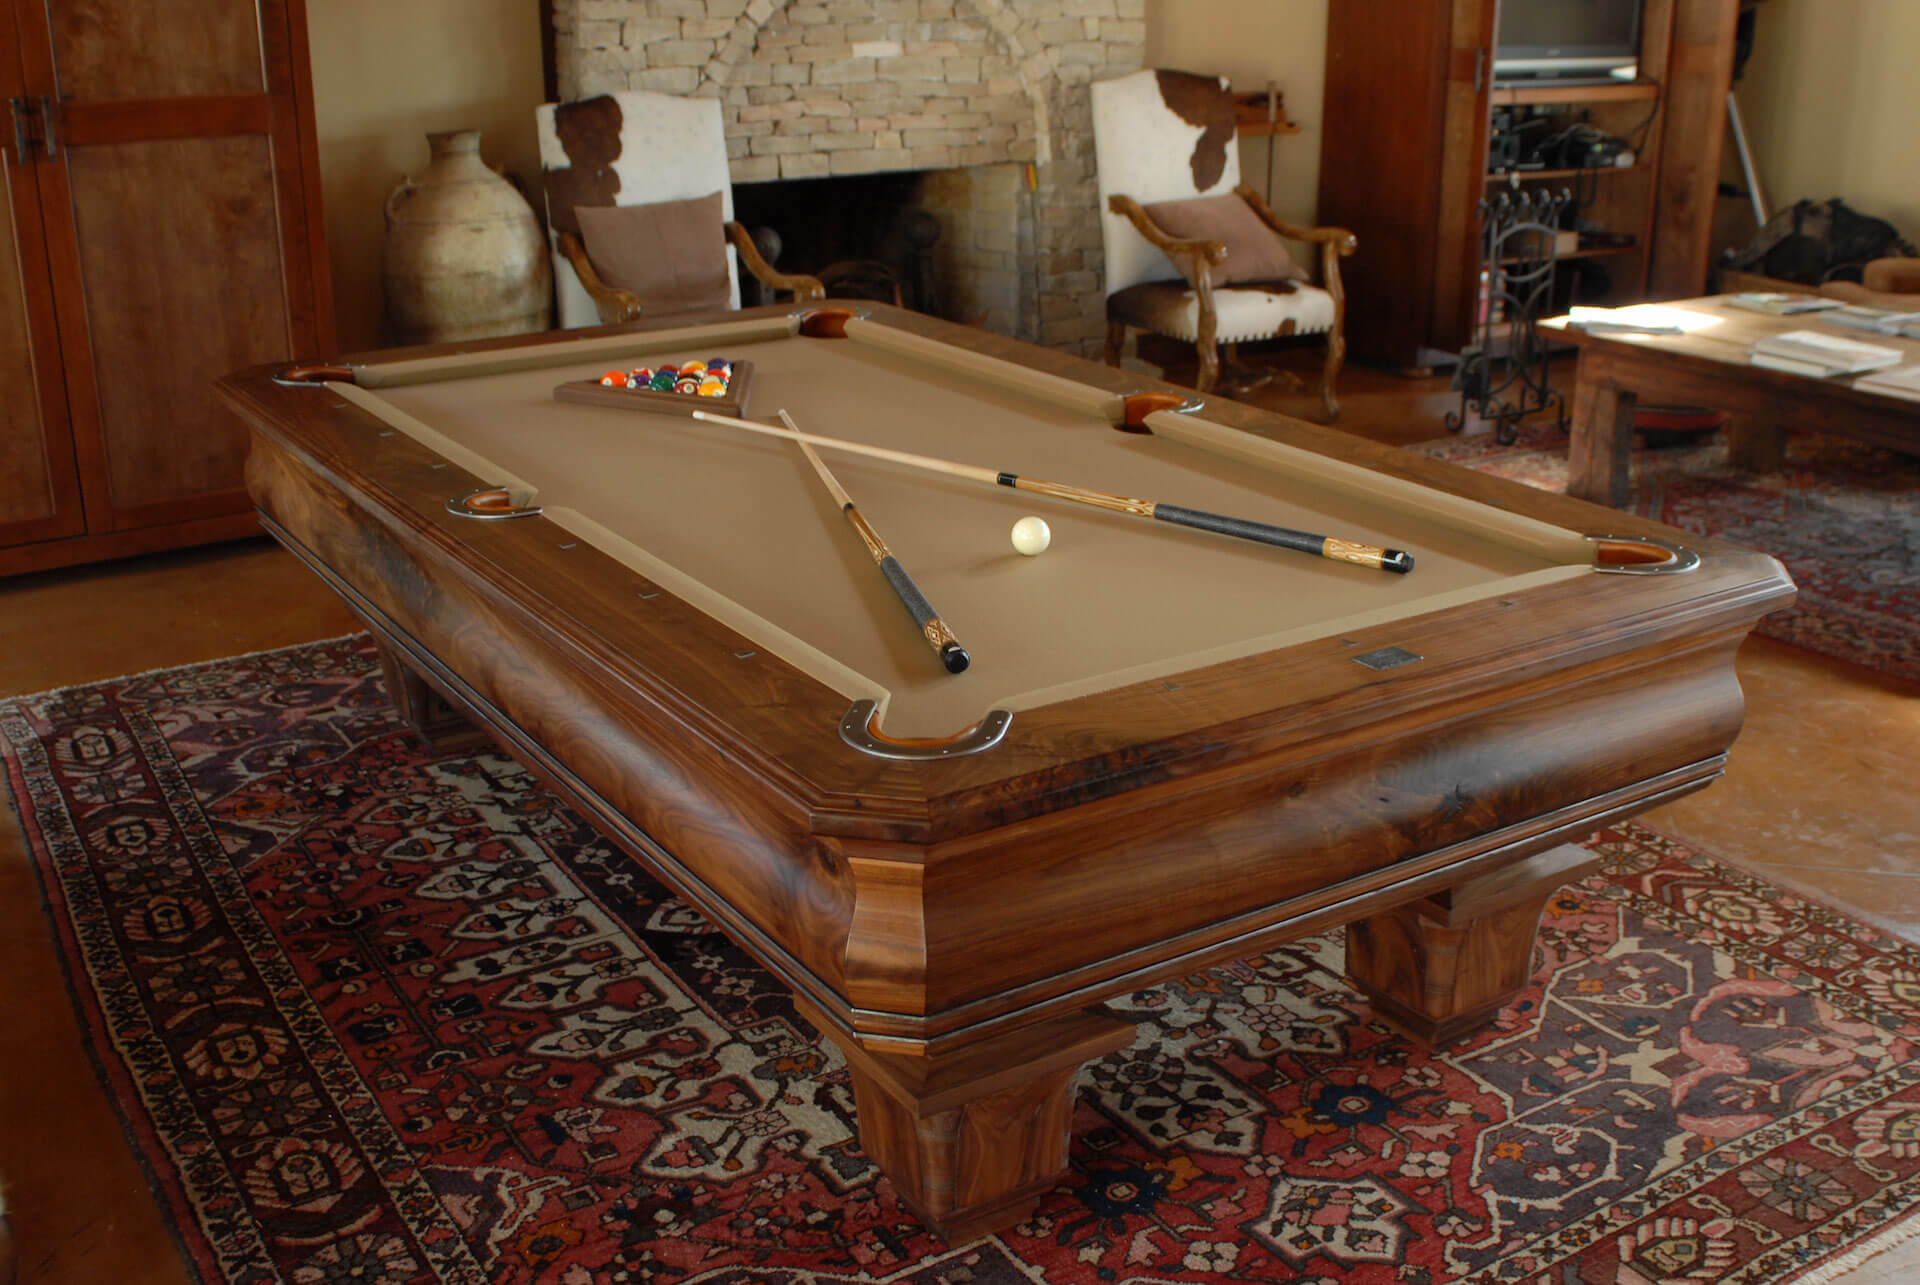 south-western-pool-table-walnut-clipped